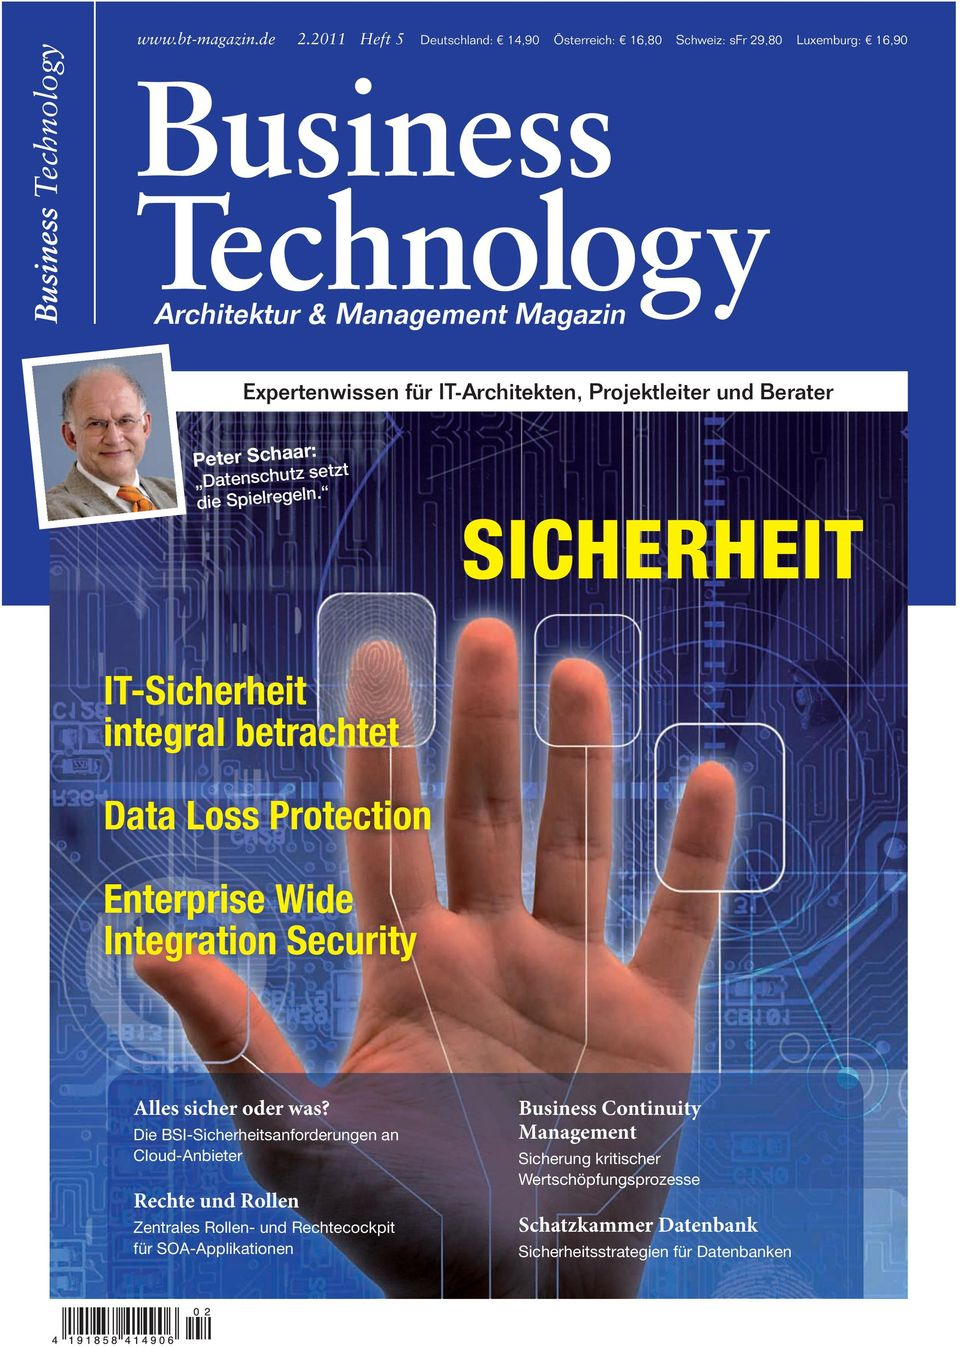 SICHERHEIT IT-Sicherheit integral betrachtet Data Loss Protection Enterprise Wide Integration Security Alles sicher oder was?